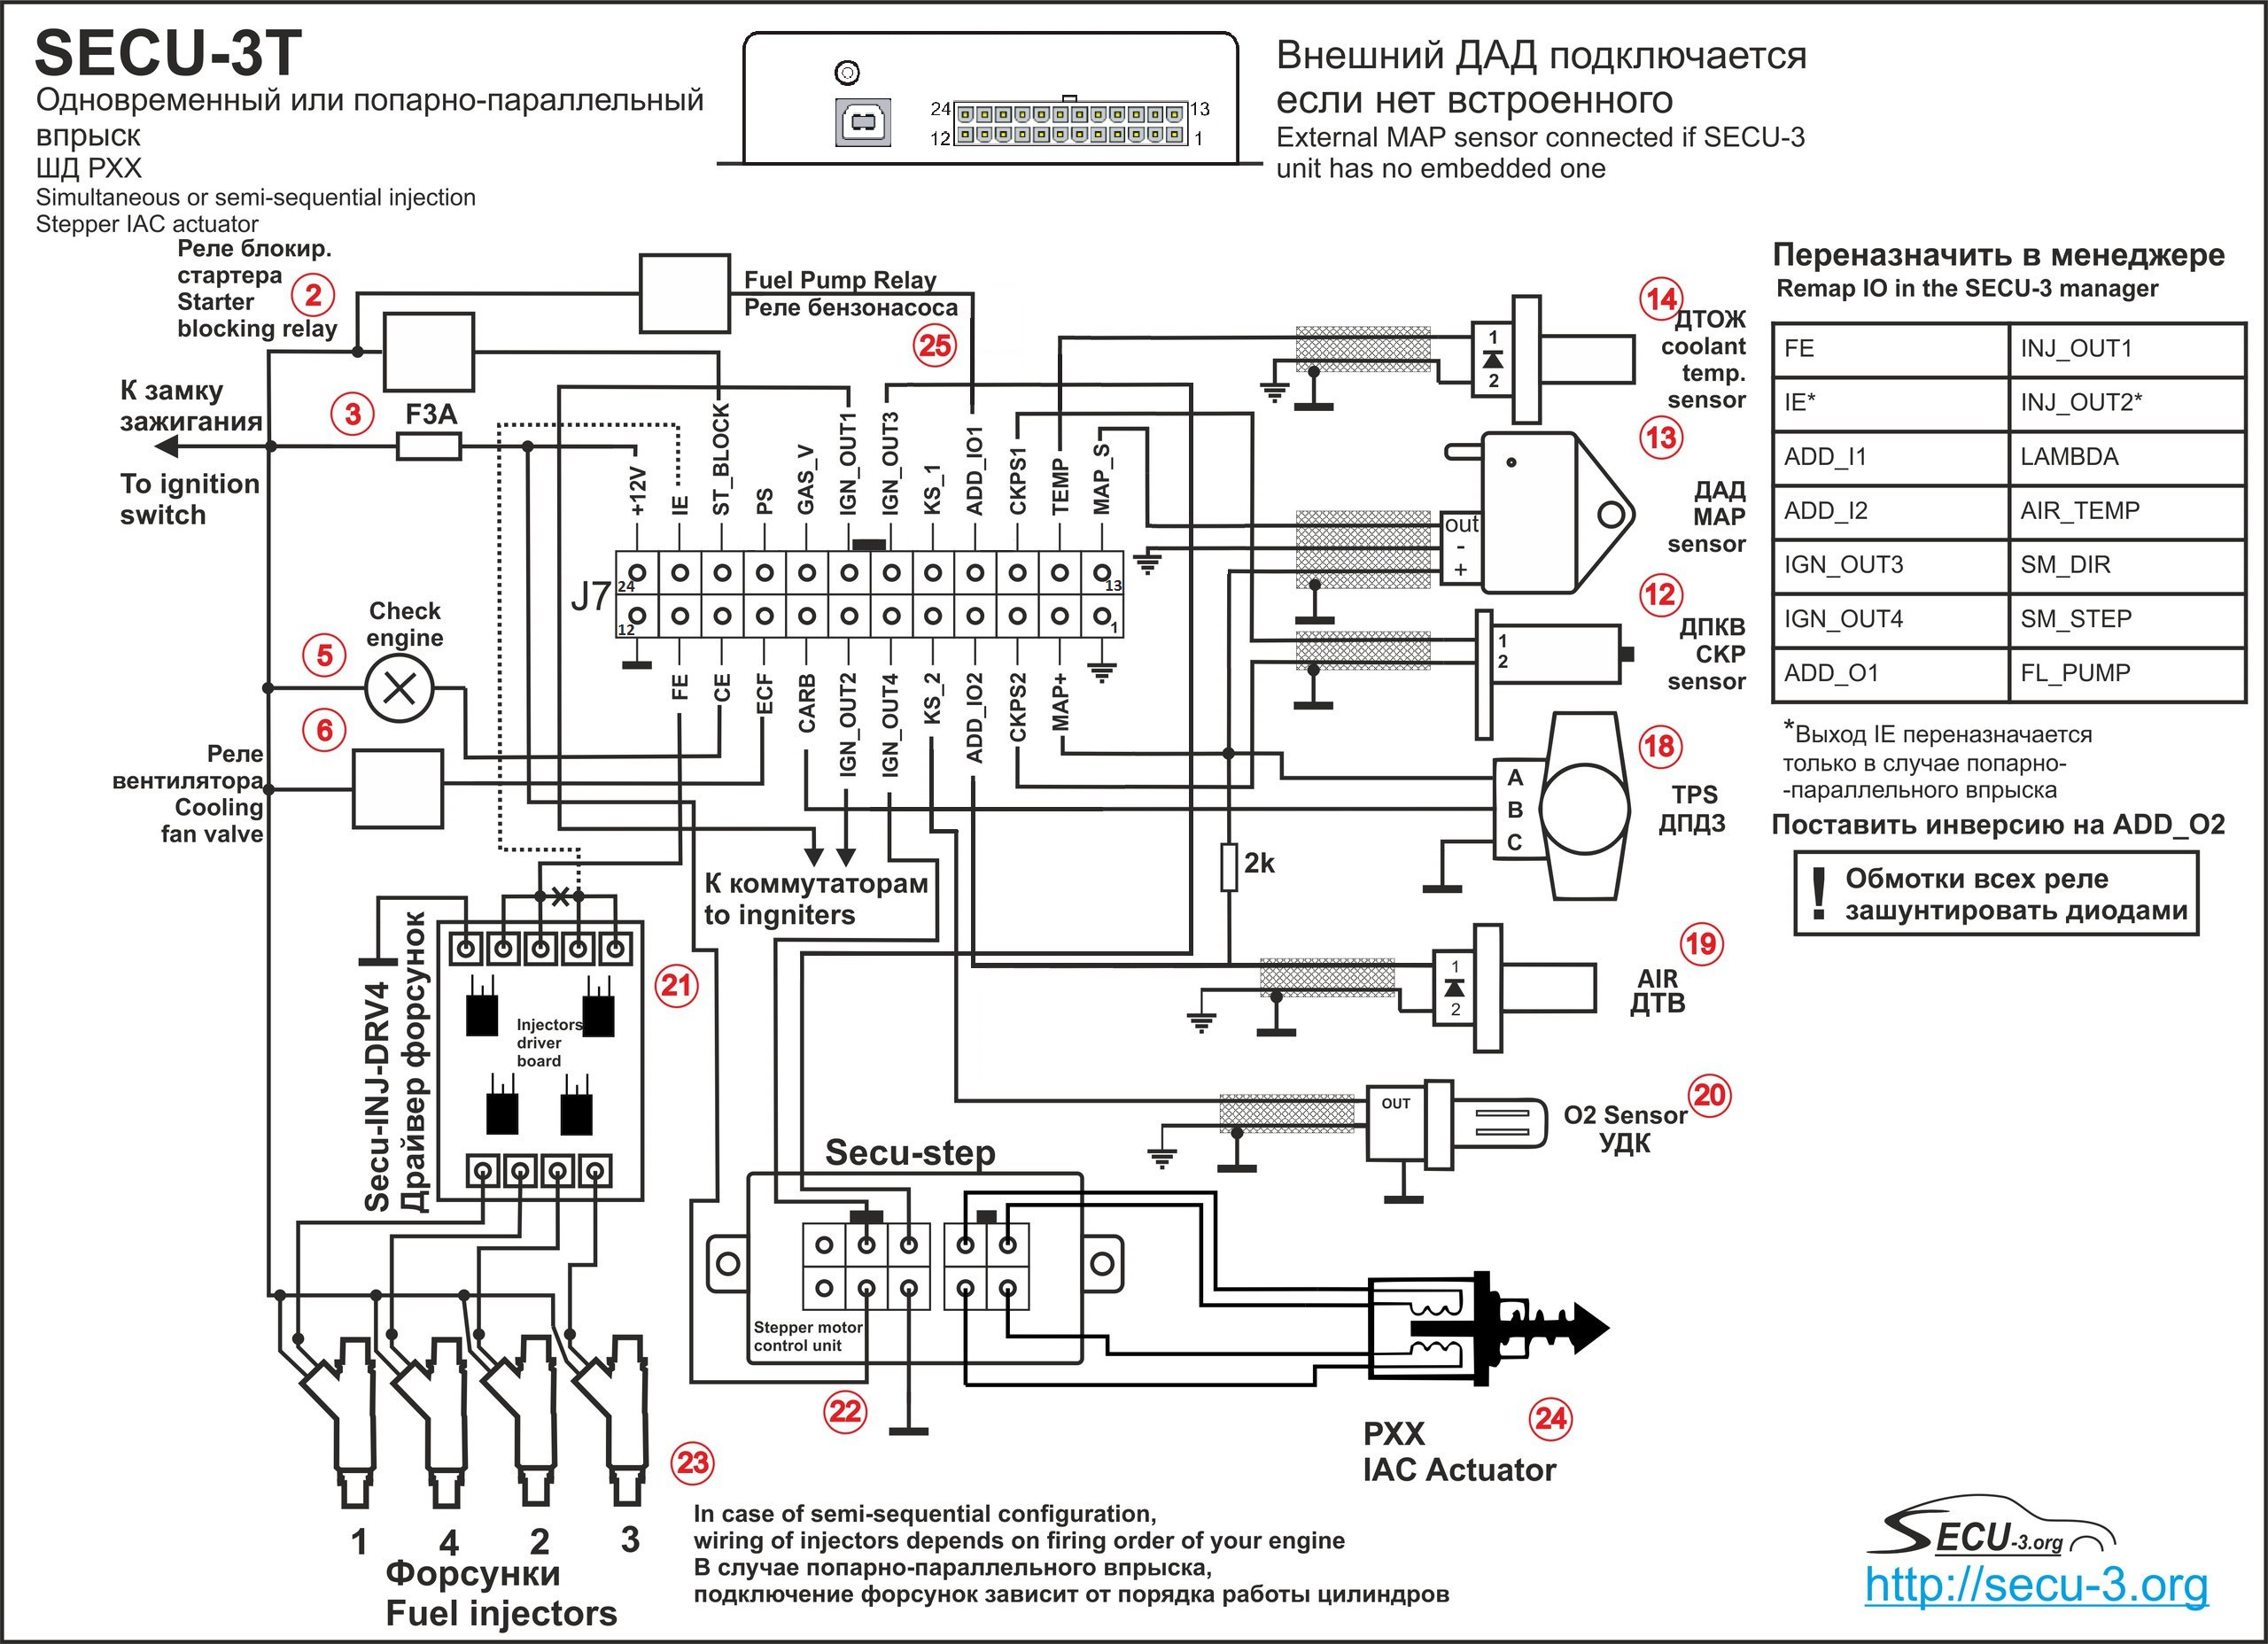 wiring diagrams for secu-3t  24 pins connector    ignition and fuel injection system